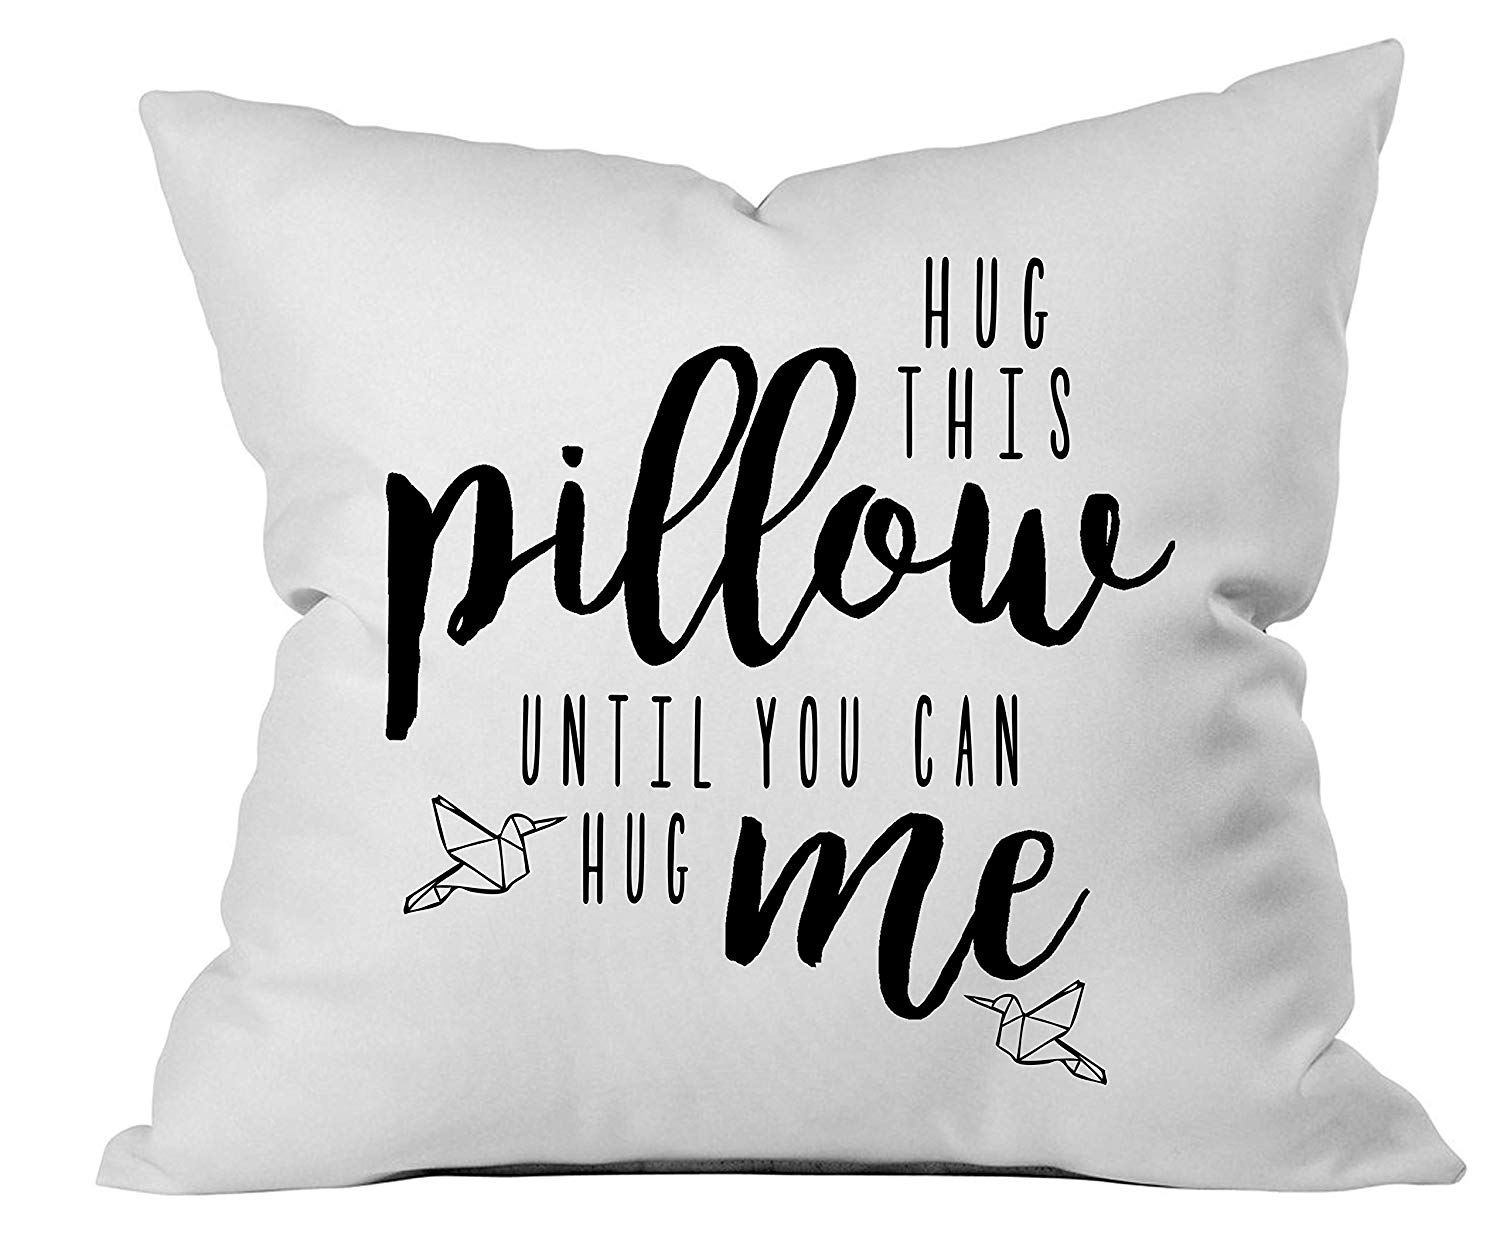 One Year Anniversary Gifts for Girlfriend Sentimental Pillow Cover